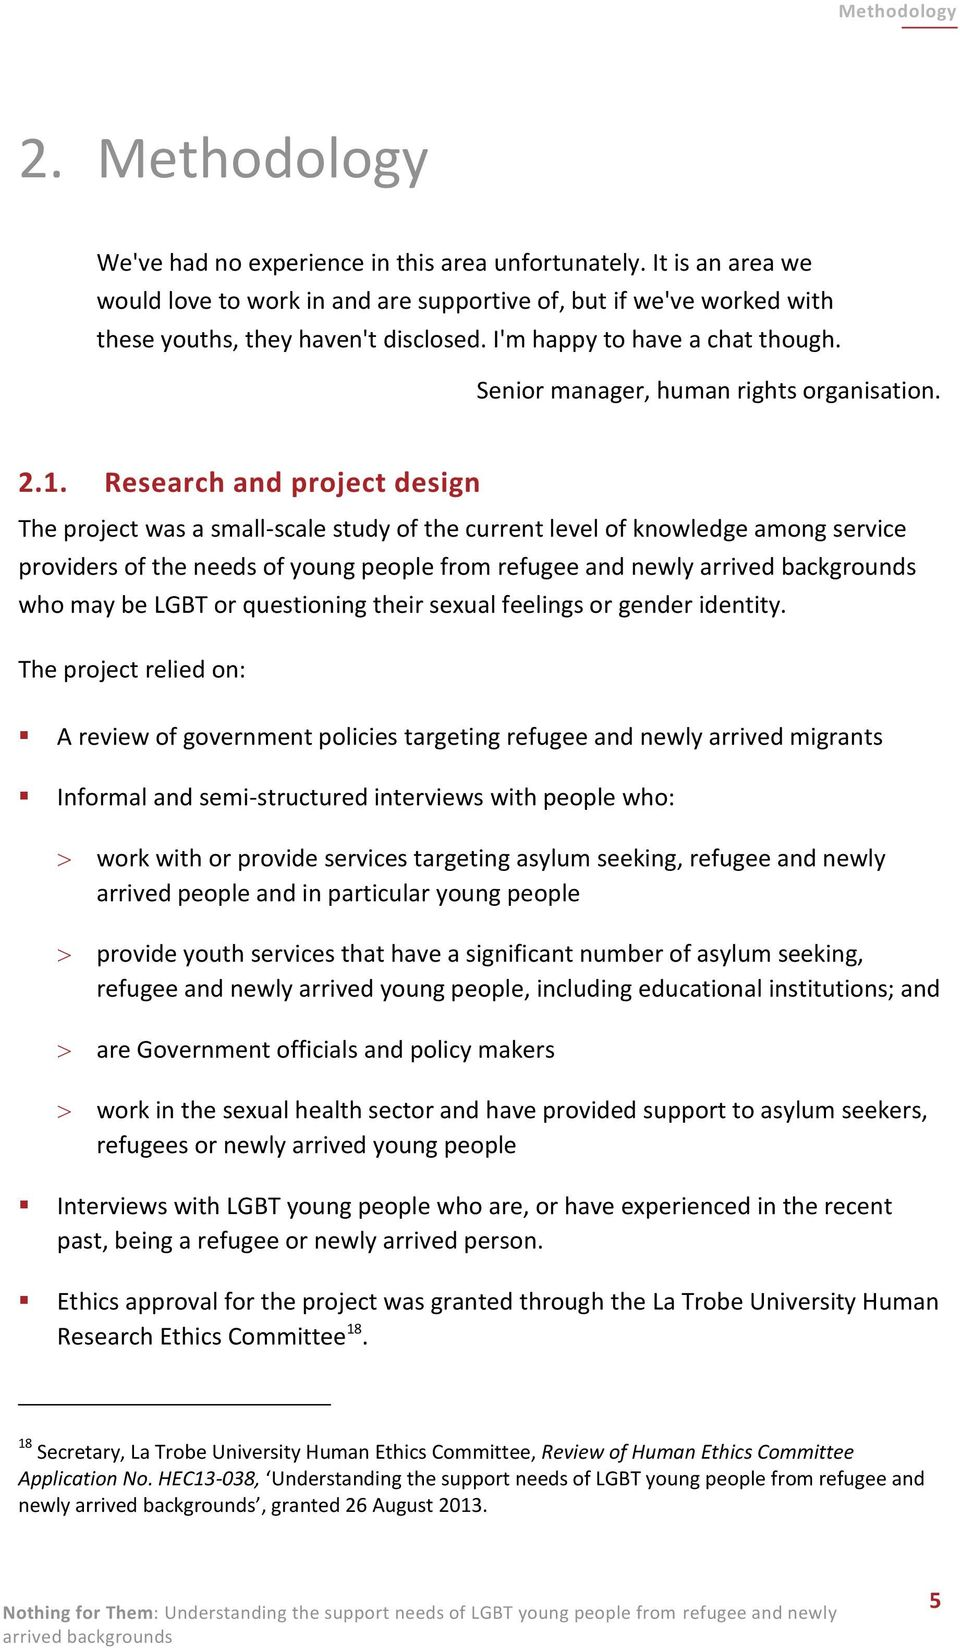 2.1. Research and project design The project was a small-scale study of the current level of knowledge among service providers of the needs of young people from refugee and newly who may be LGBT or